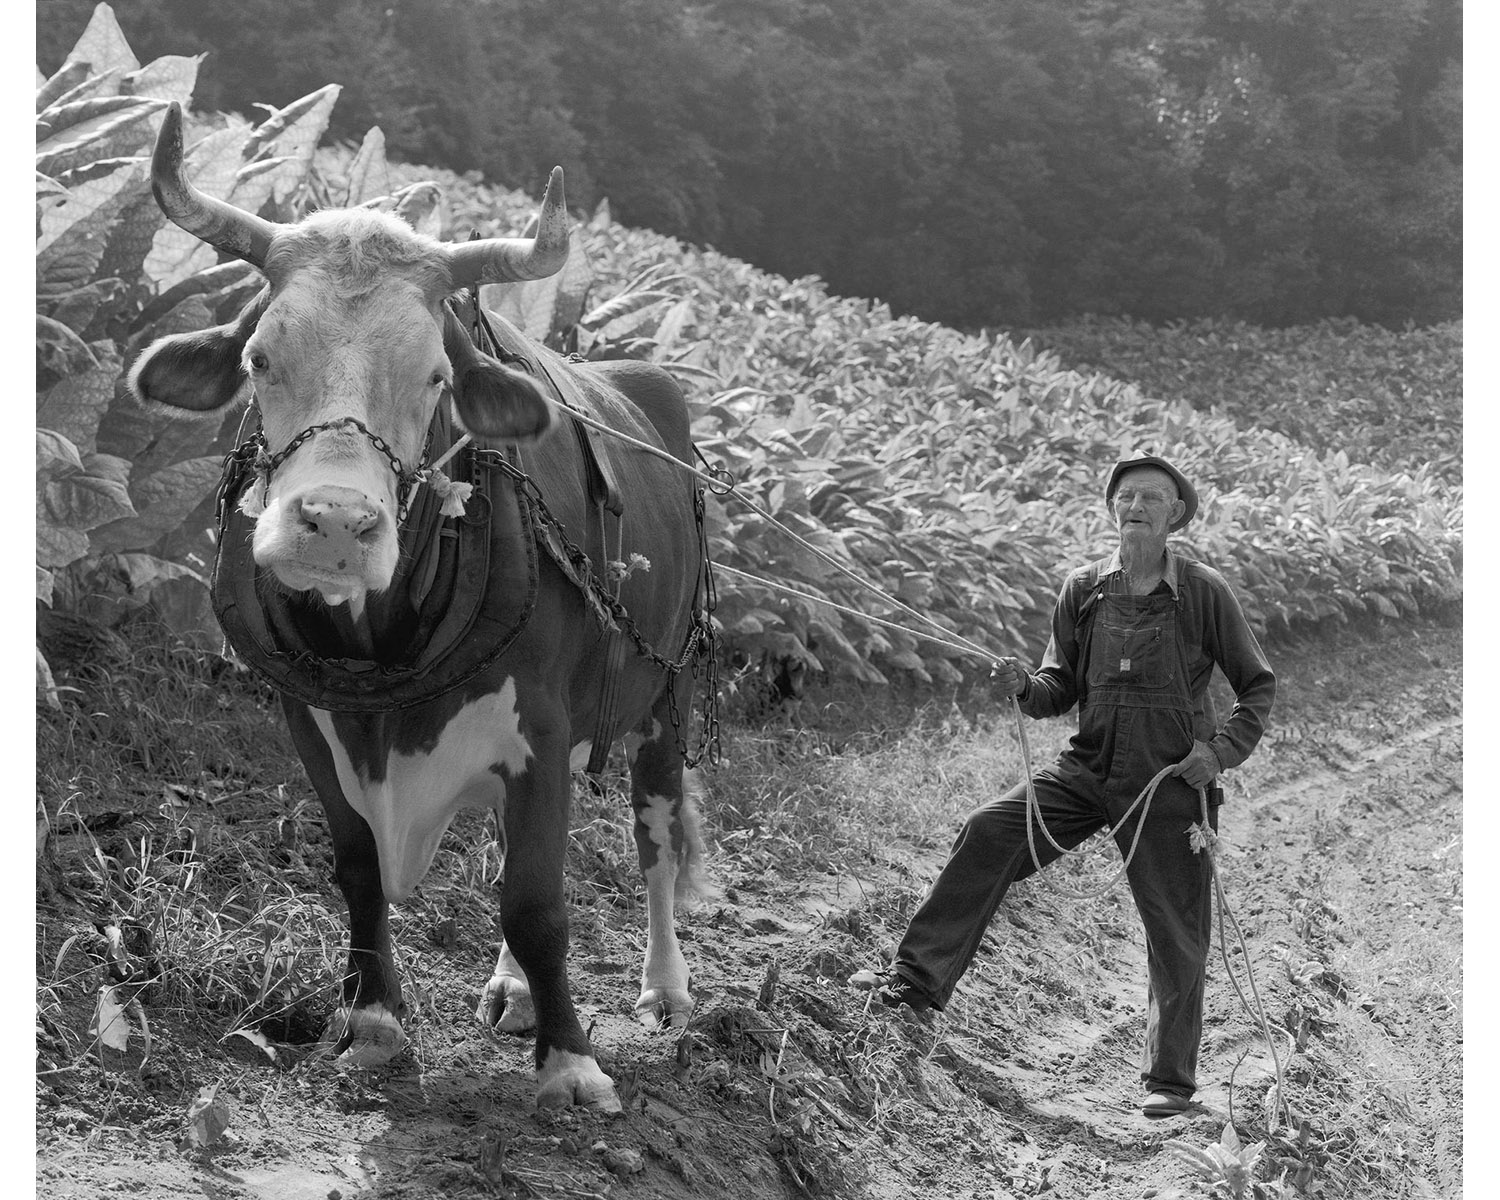 Collie Payne steer Berry plowing tobacco field Tim Barnwell Appalachian photographer